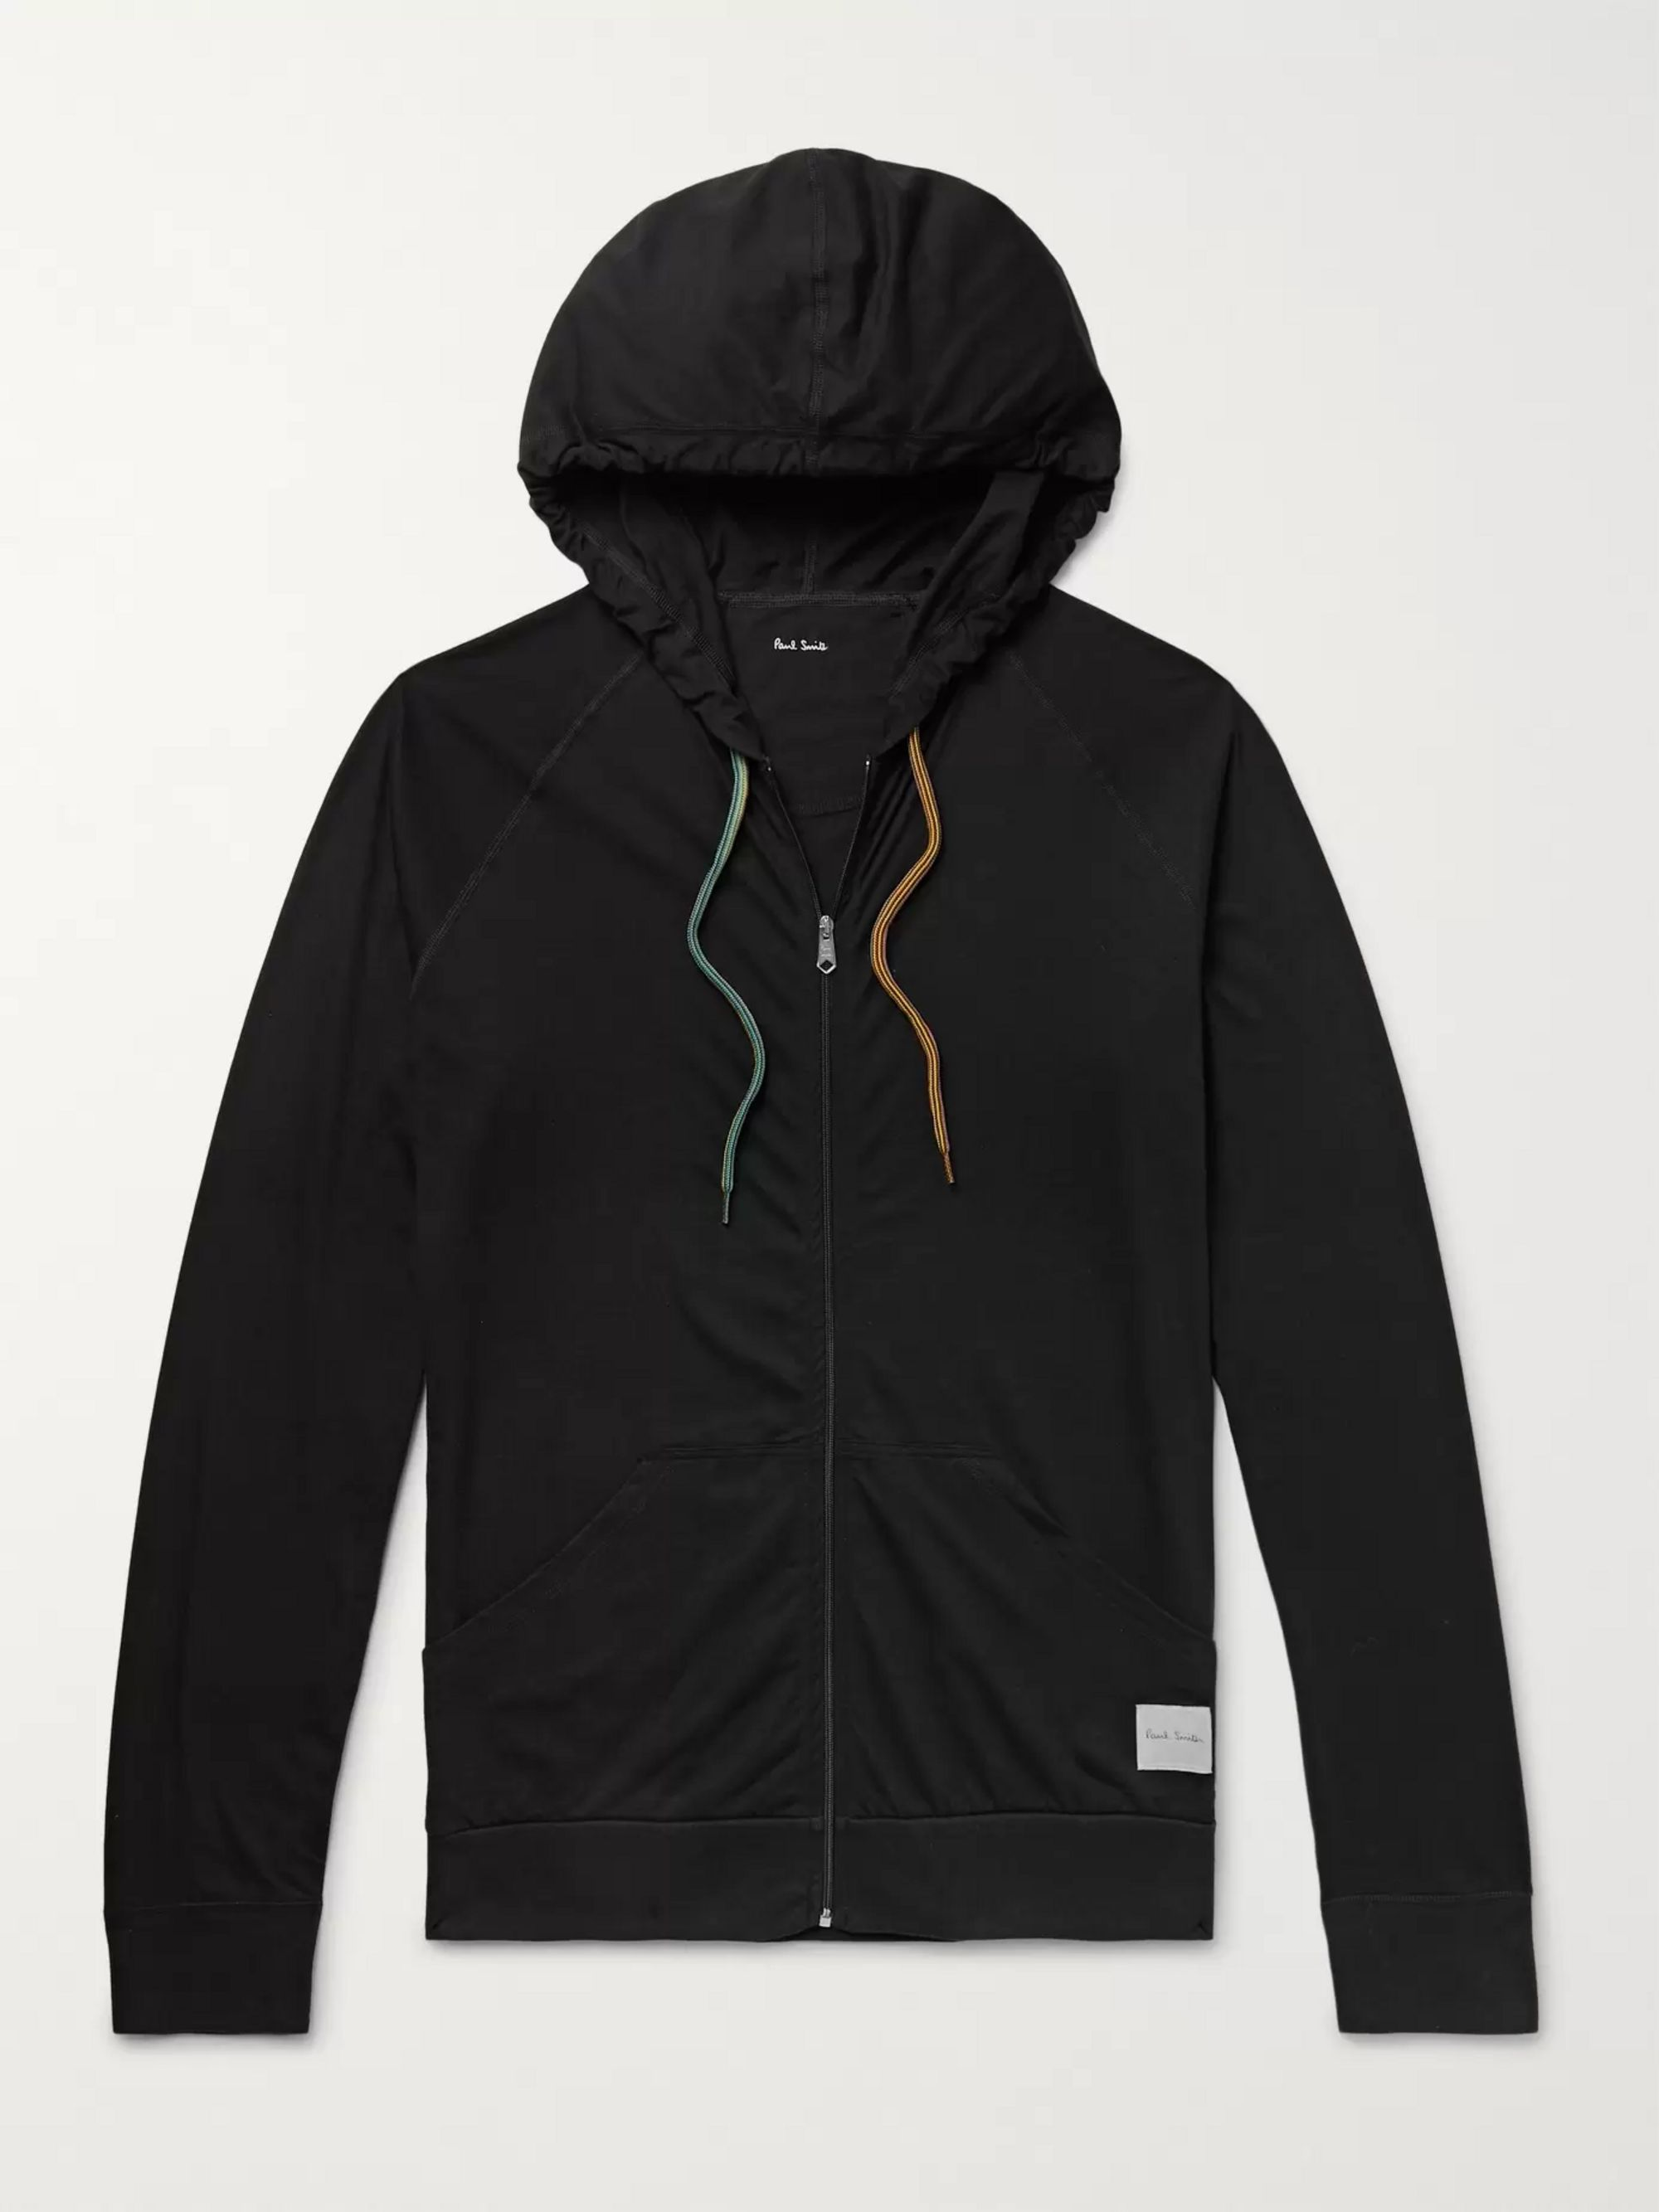 Cotton Jersey Zip Up Hoodie by Paul Smith